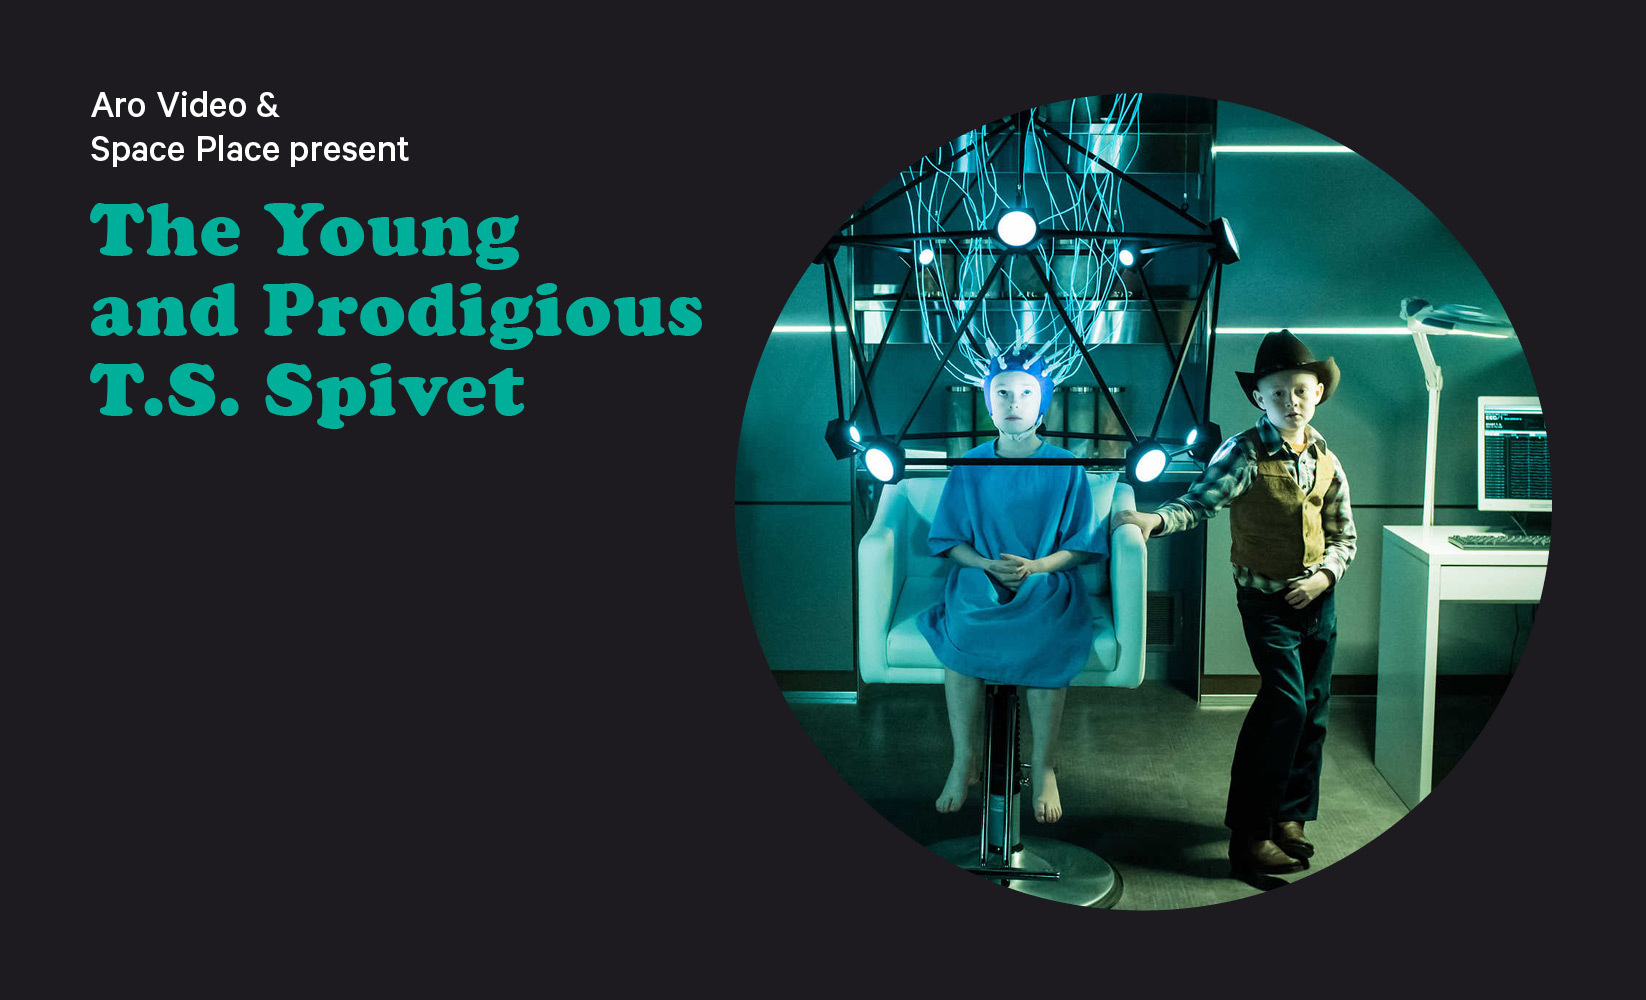 The Young and Prodigious T.S Spivet